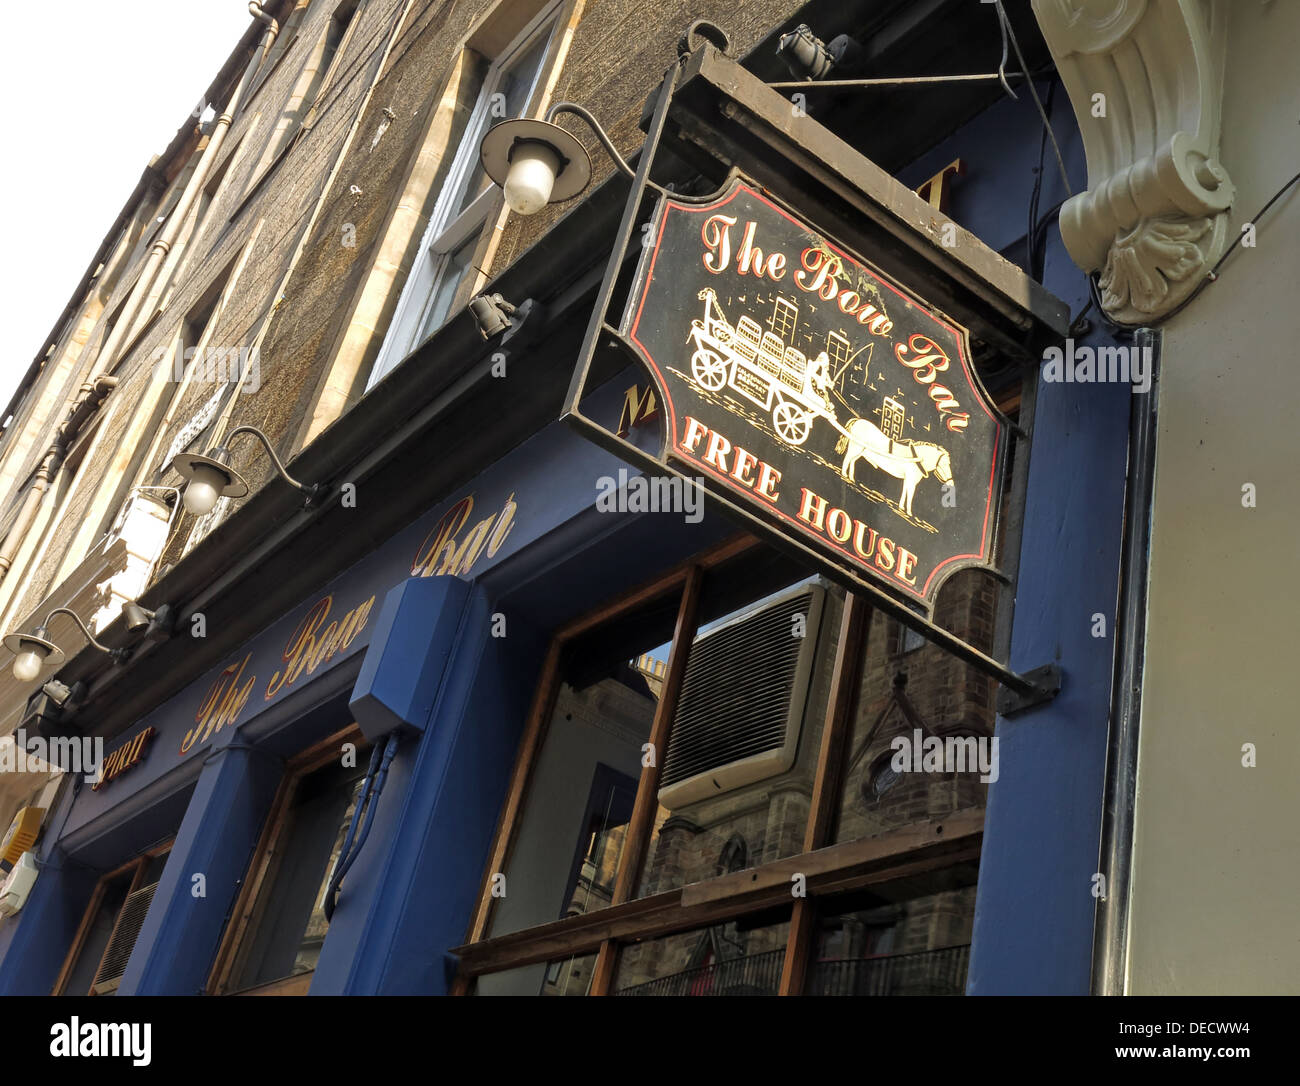 outside,sign,free house,free house,The Bow Bar,exterior,Victoria Street,Edinburgh,Scotland,UK,Victoria St,tourist,travel,Victoria,pub,real ale,80 West Bow,Midlothian,EH1 2HH,EH12HH,GoTonySmith,Buy Pictures of,Buy Images Of